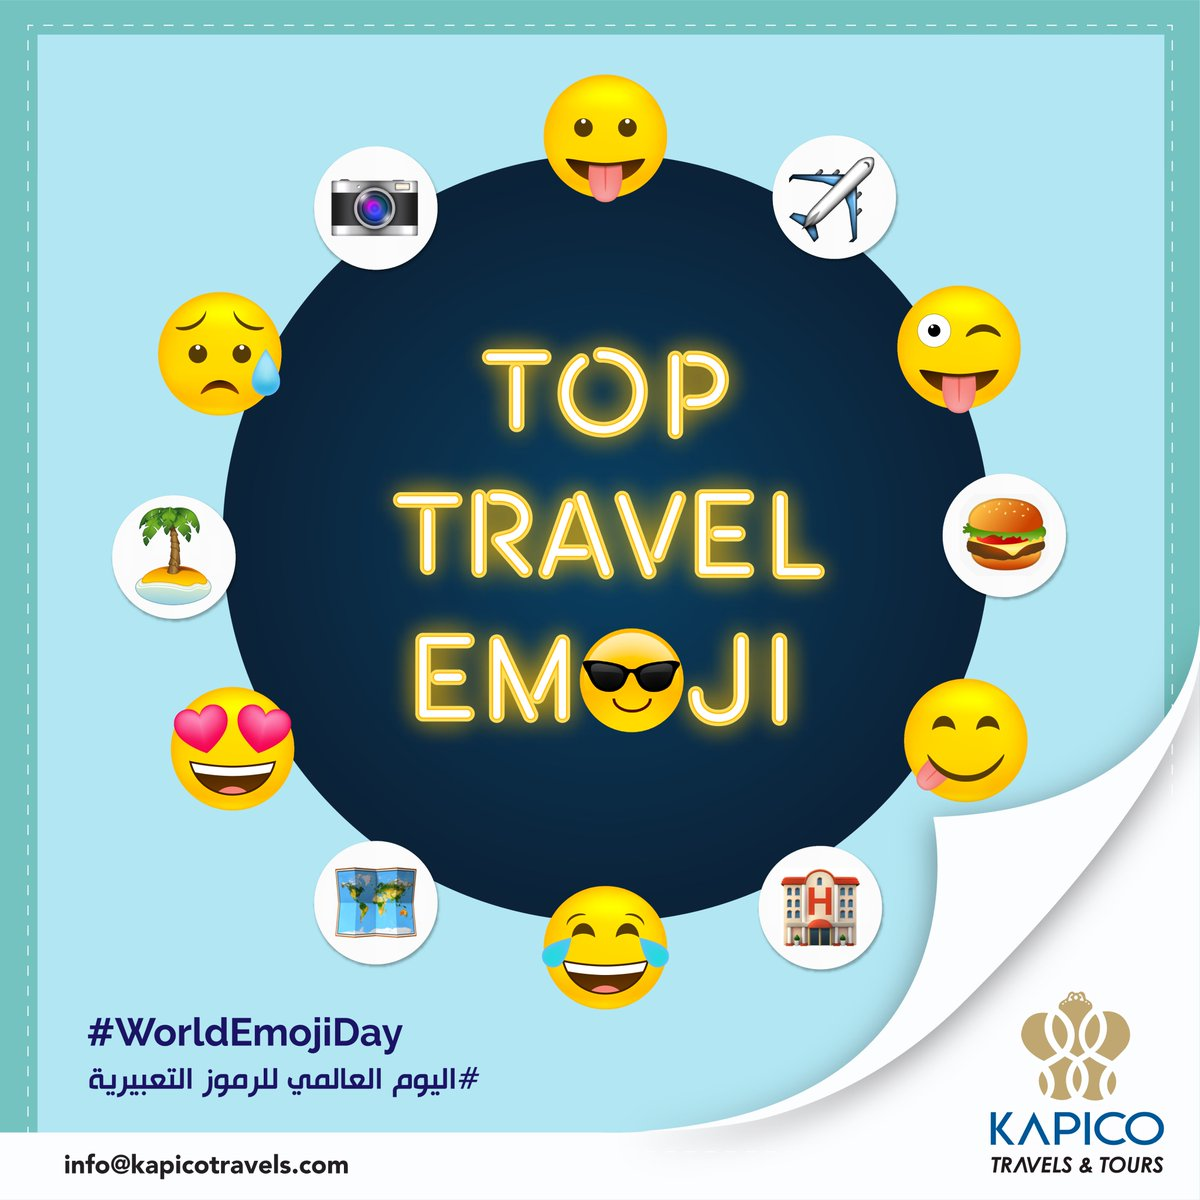 ❤️World Emoji Day❤️ is an unofficial holiday celebrated annually on 17 July since 2014.Jeremy Burge is the creator of World Emoji Day. Some Top #Emoji's used by the #Travellers. Comment your favorite emoji. اليوم العالمي للرموز التعبيرية  #kapico #kapicotravels #worldemojiday https://t.co/LGtHu76fwc